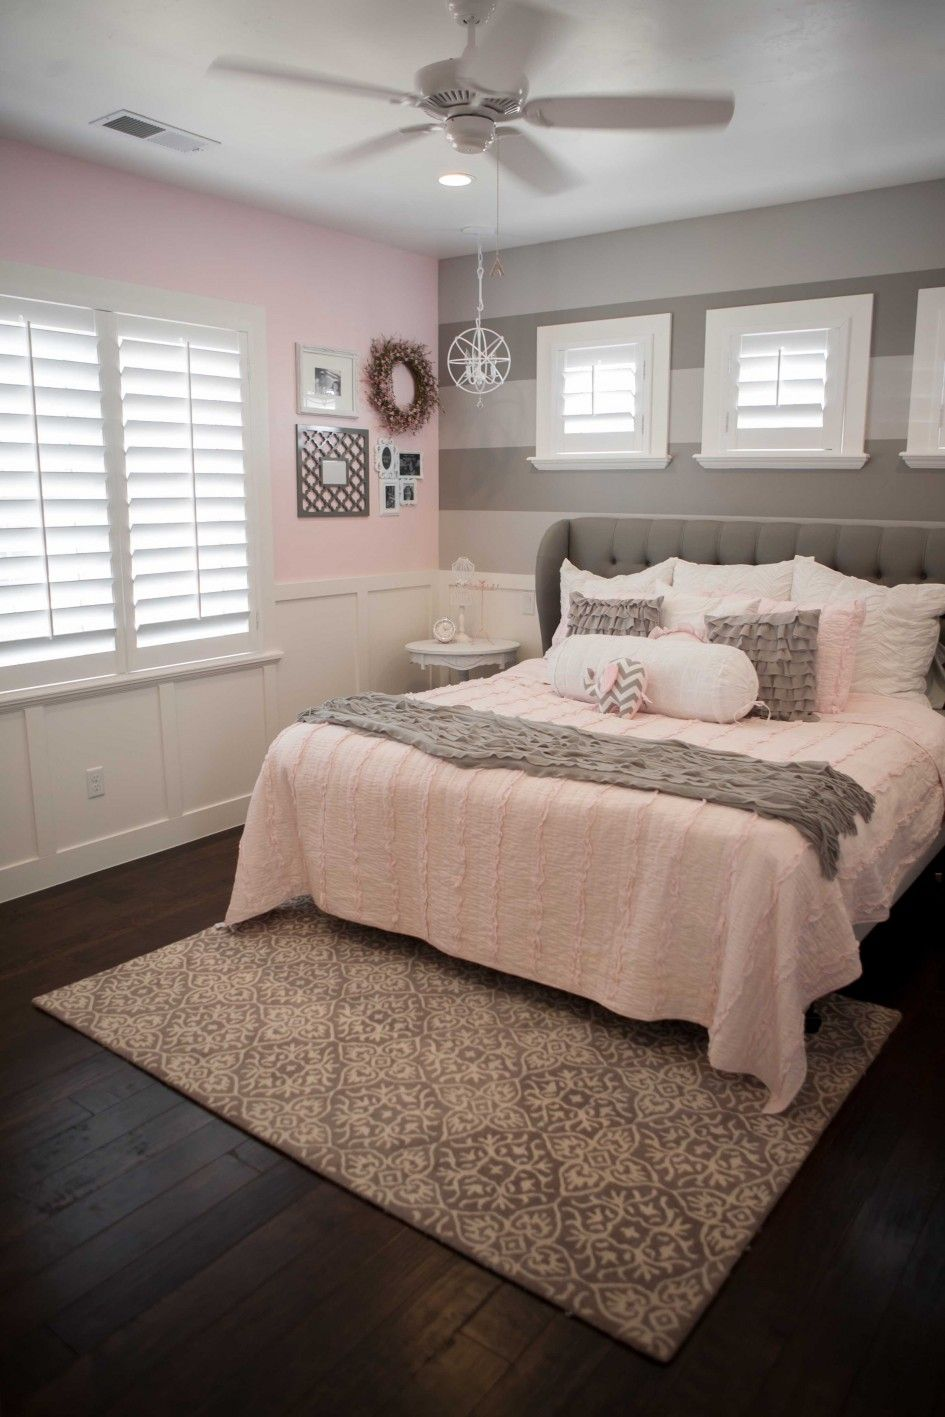 Bedroom, Glorious Gray Wing Tufted Headboard And Pink Covering Bed Queen  Size With Sweet White